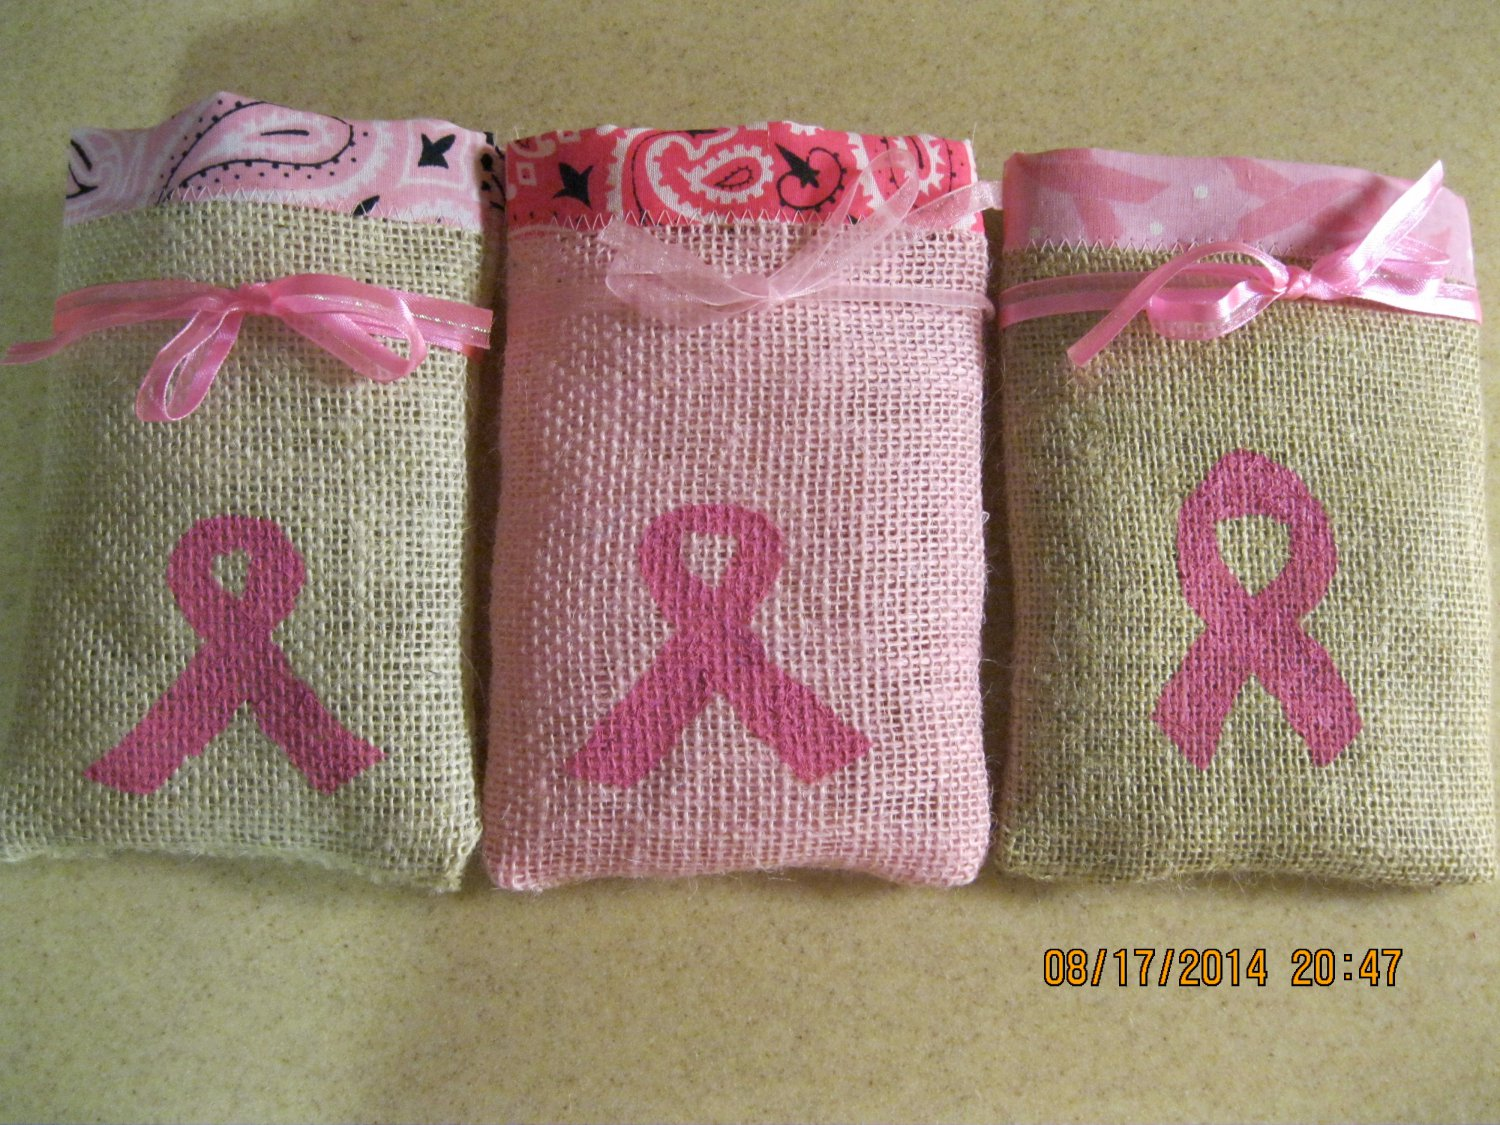 Breast Cancer Treat Bags; Awareness Party Bags; Pink Ribbon Bags, Wedding, Baby Favors, Burlap Bags